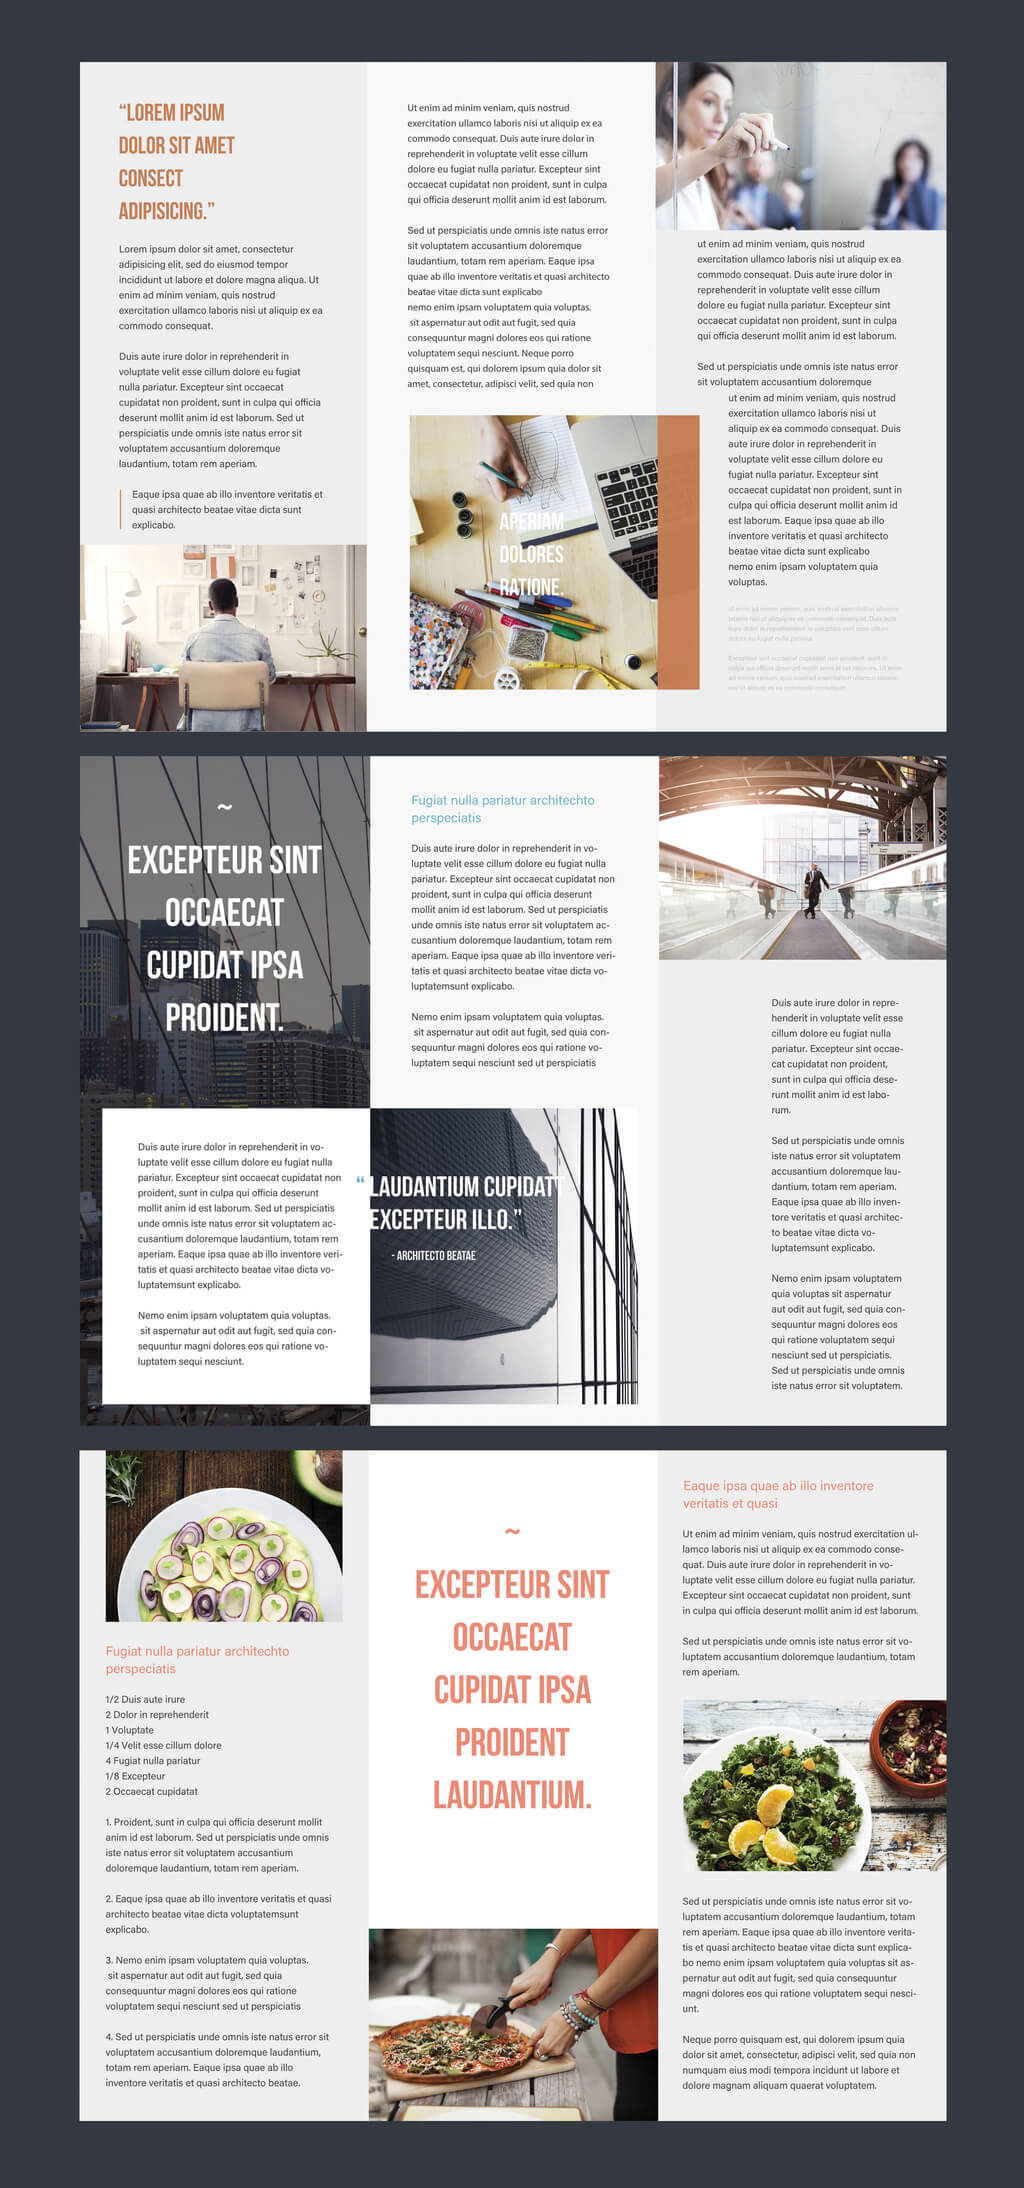 Professional Brochure Templates | Adobe Blog With Regard To Adobe Illustrator Brochure Templates Free Download